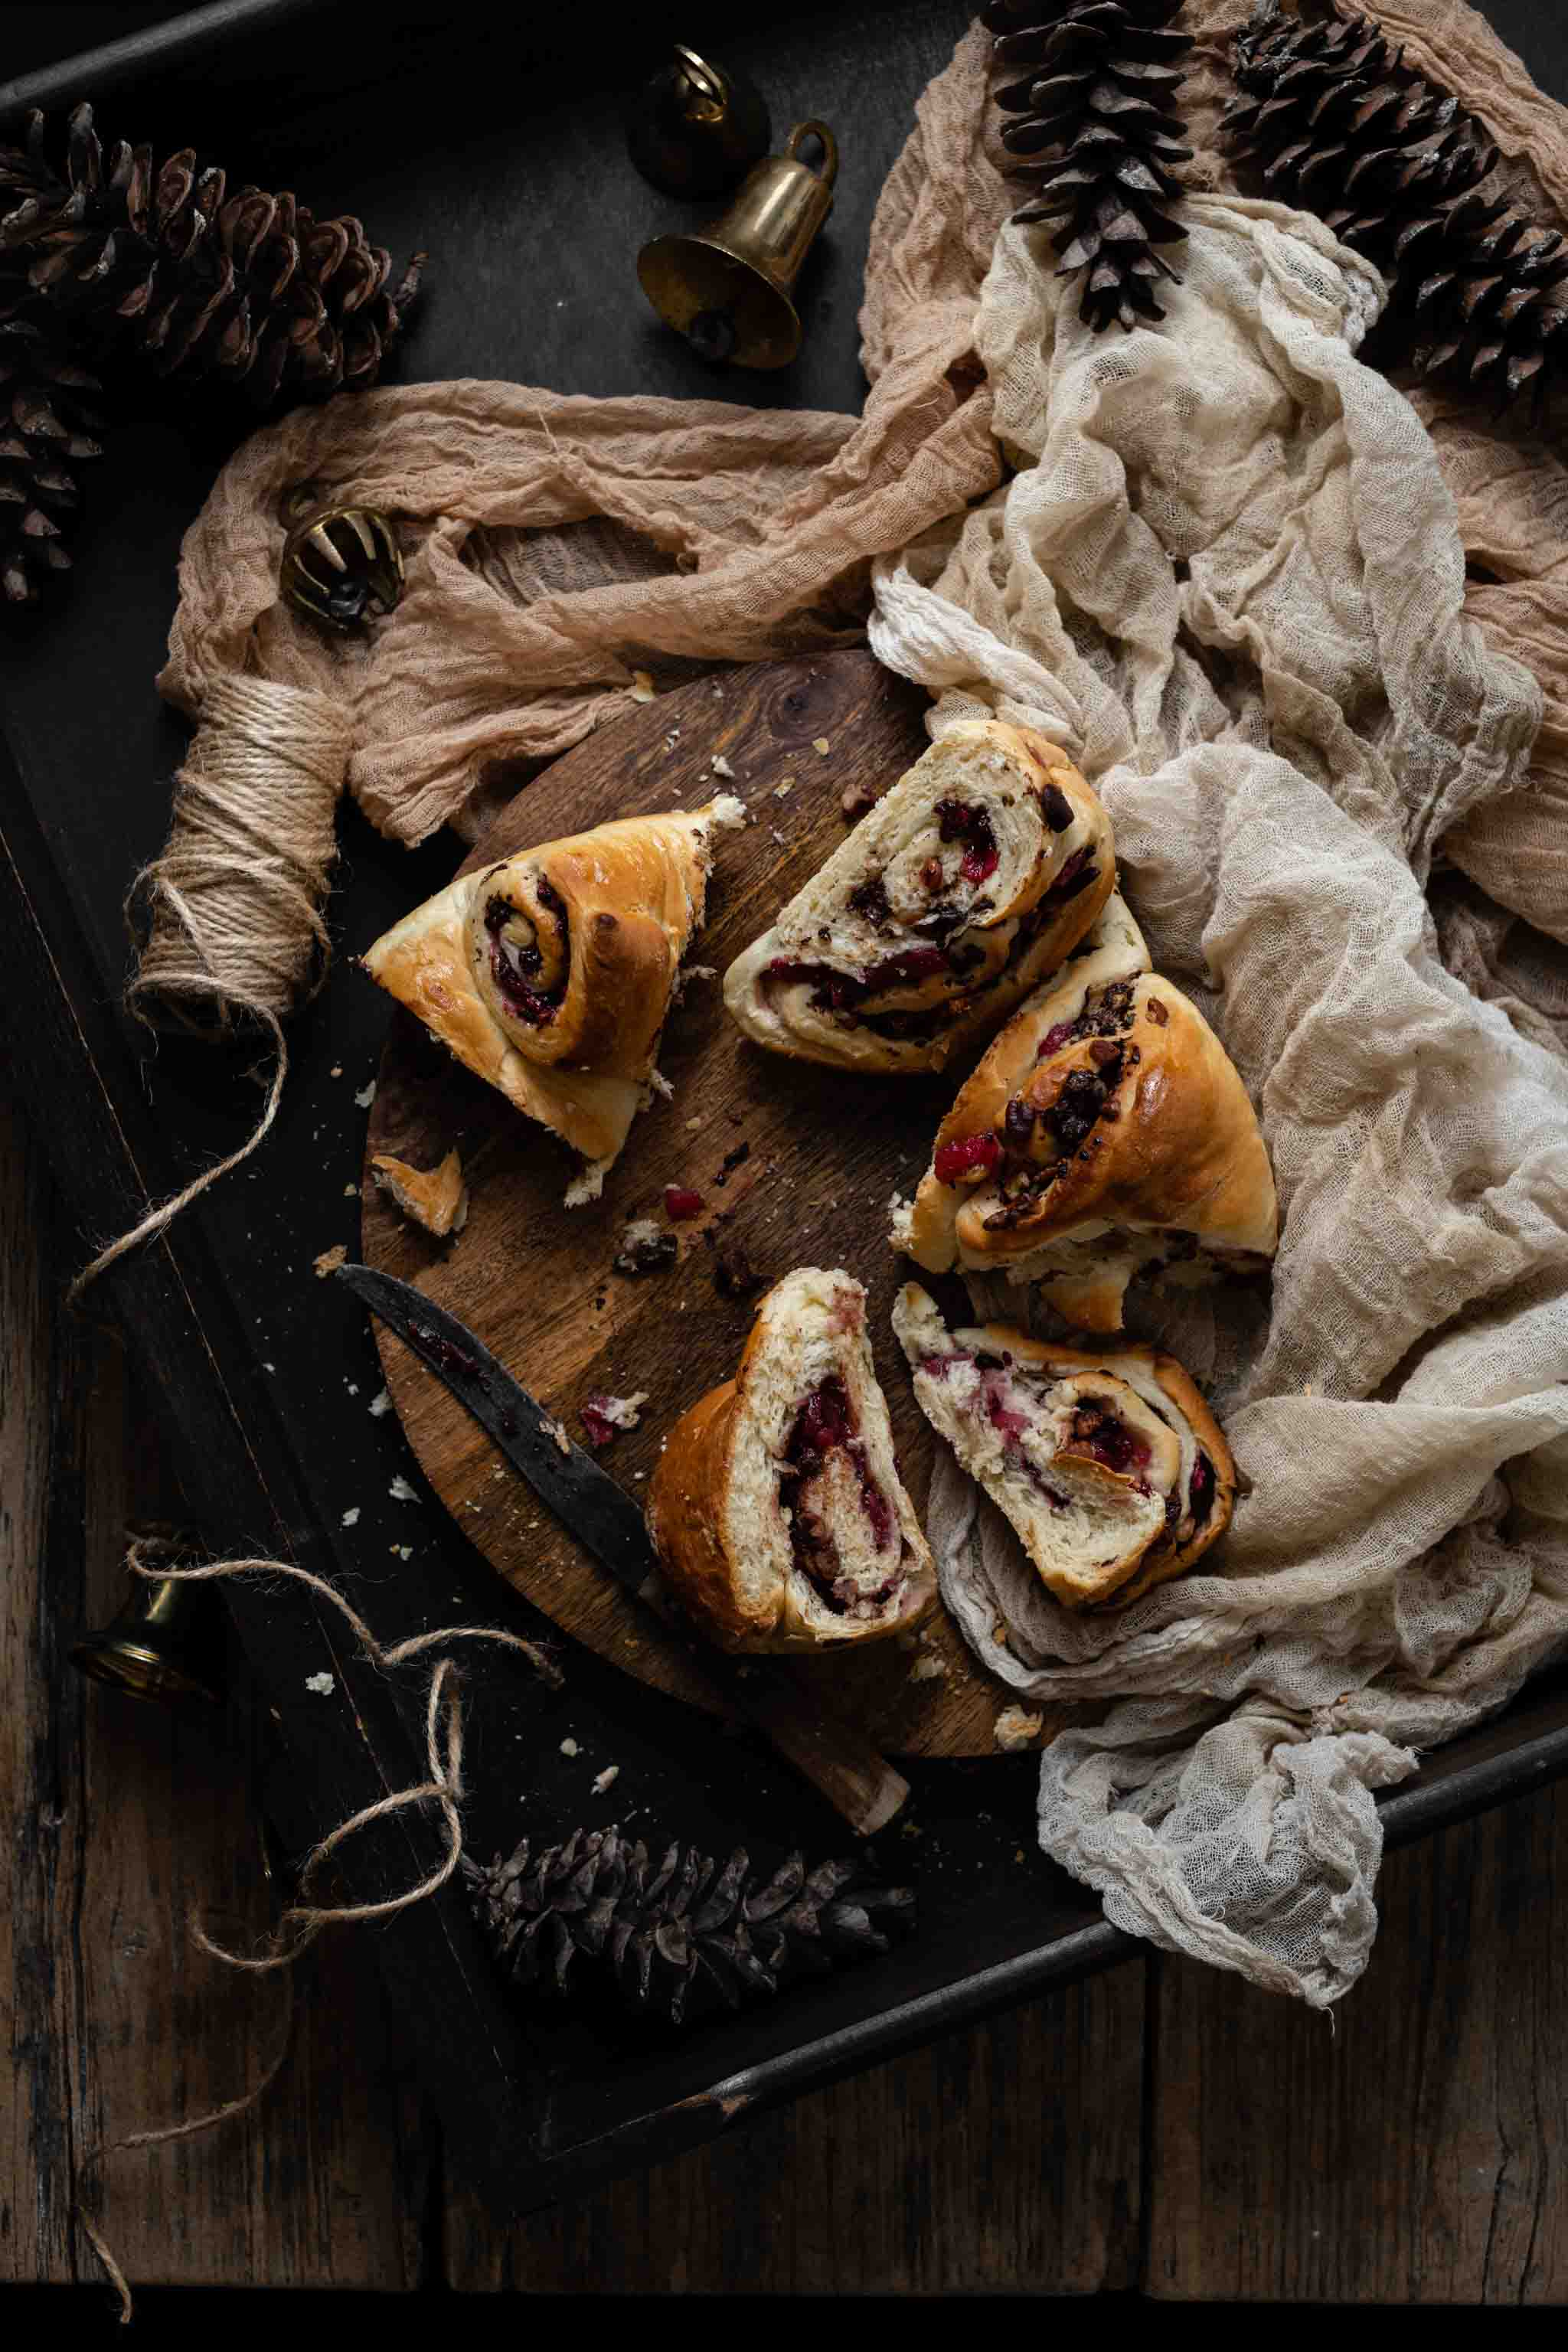 Holiday Bread Recipe with blackberry compote, chocolate, and pecans.